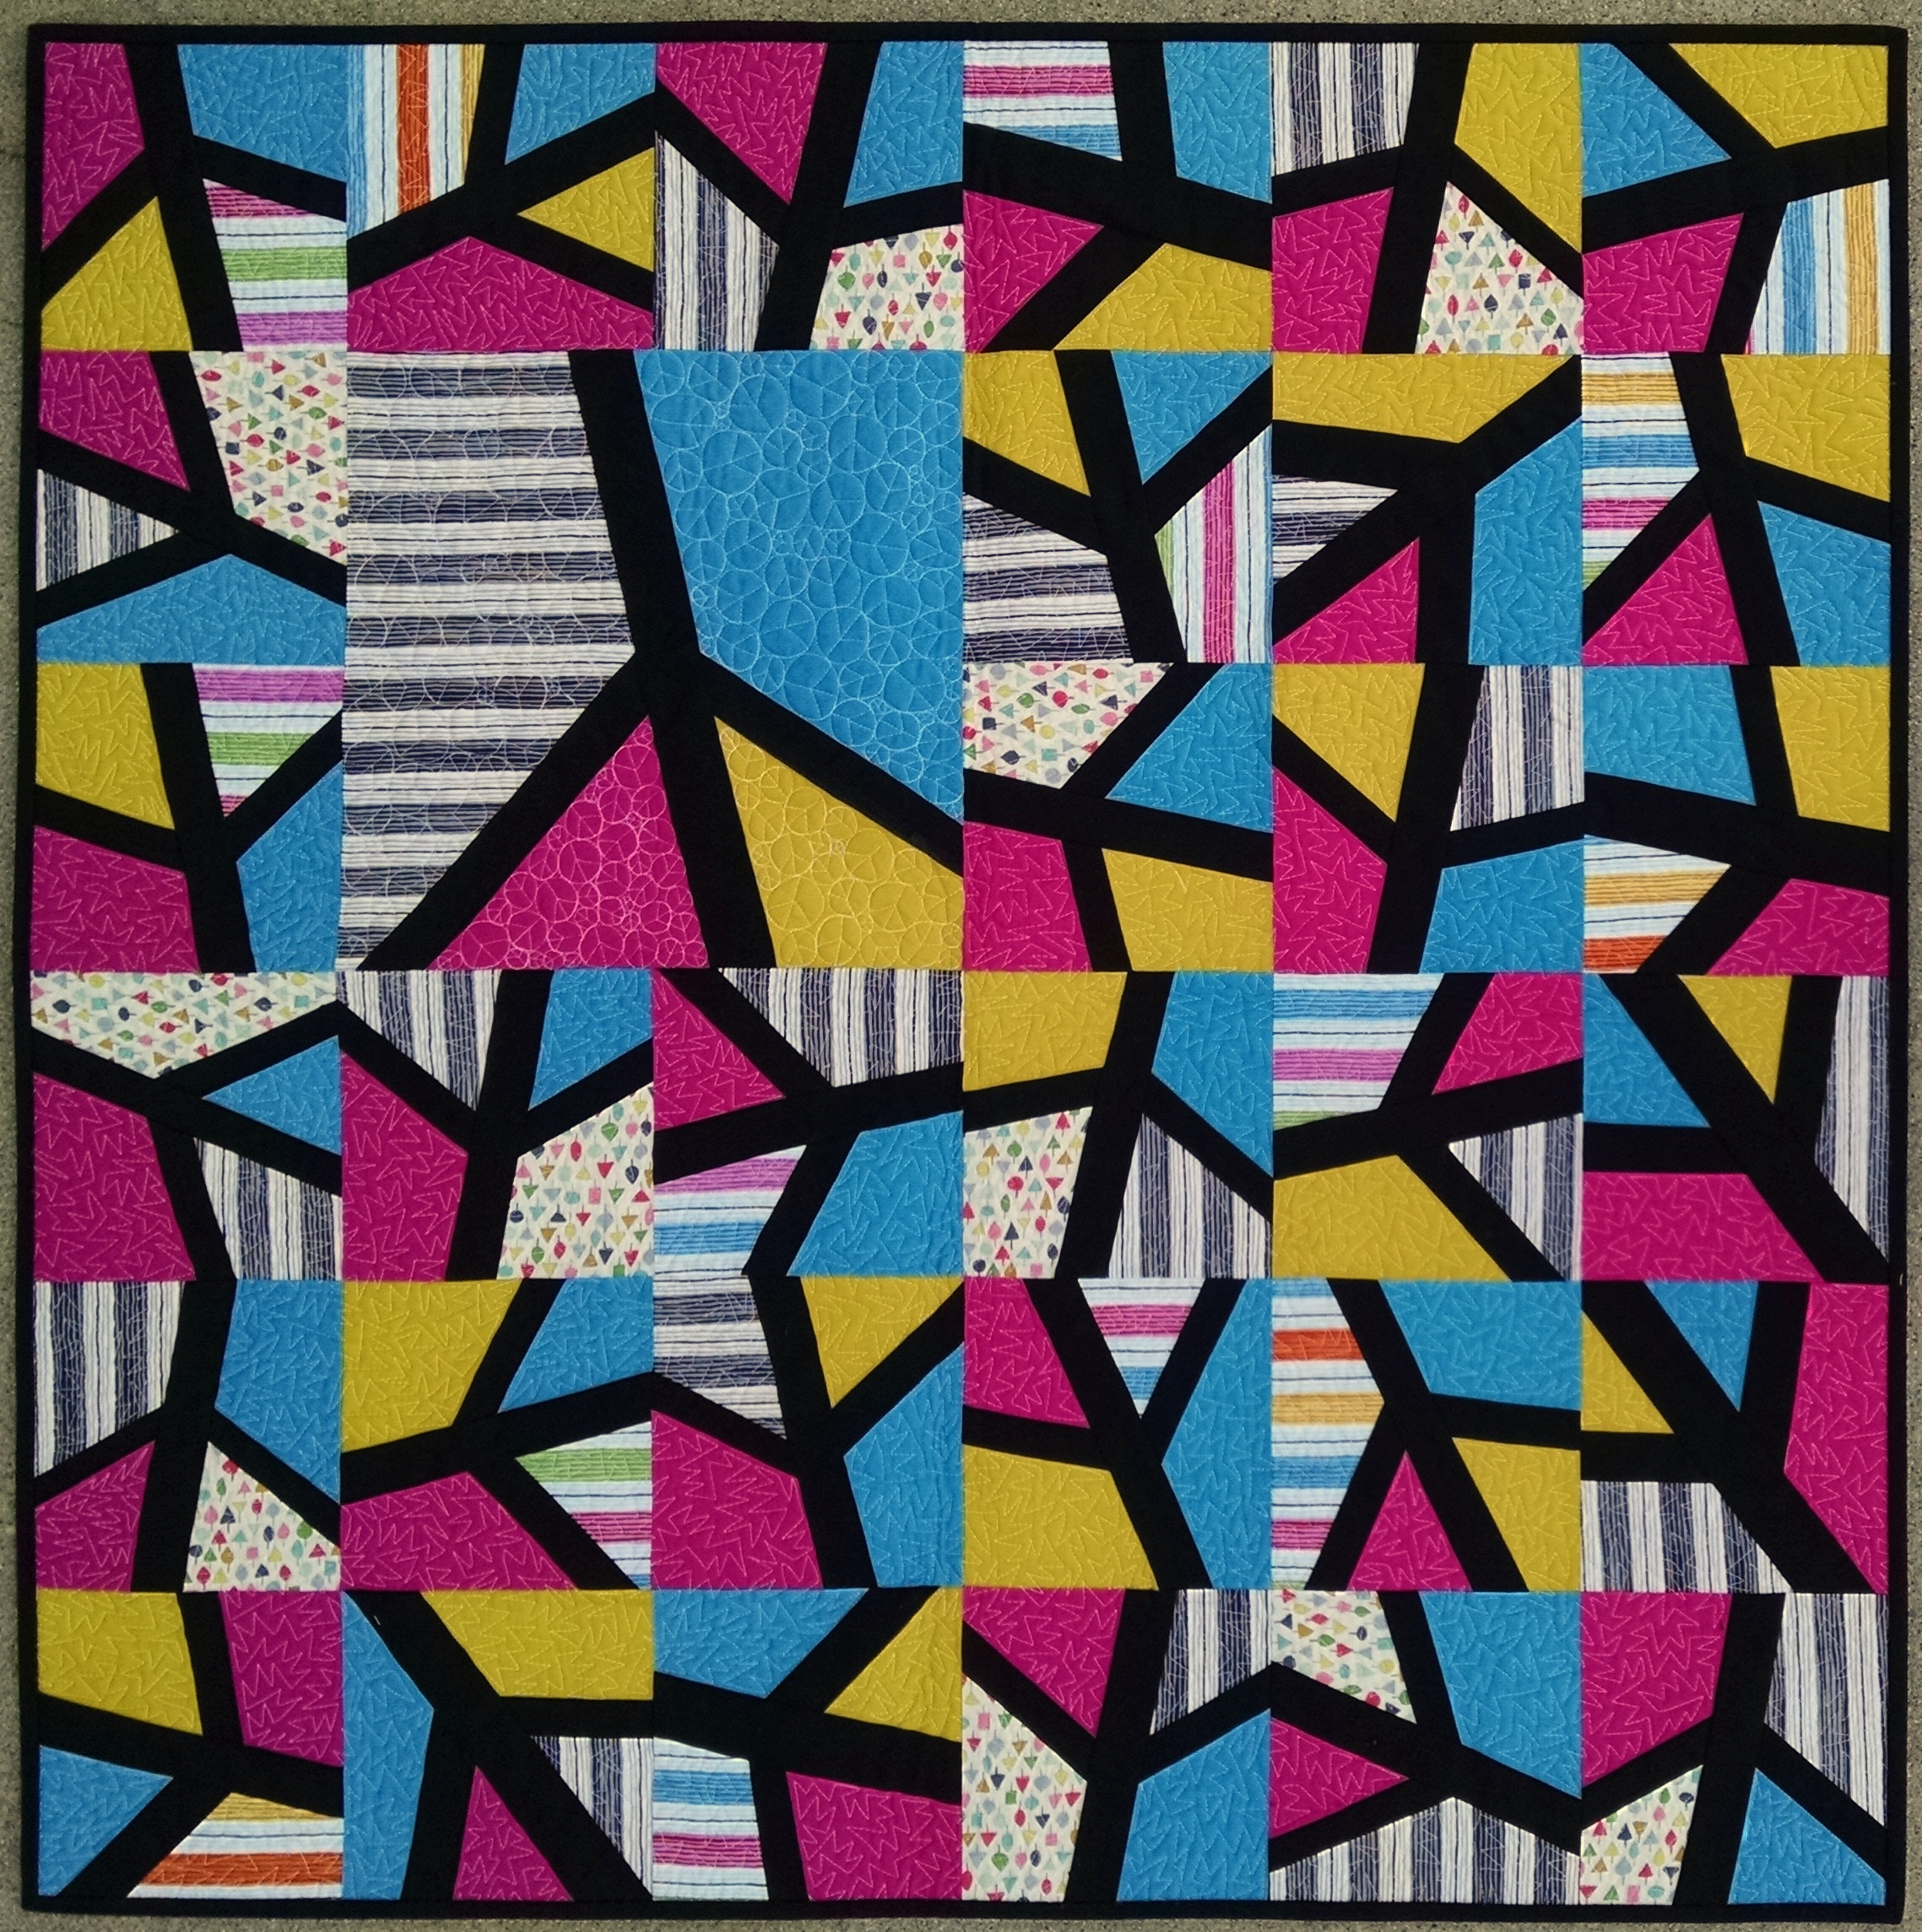 "4. Peace by Piece  November 2017 37"" x 37"" Abstract peace signs dance throughout this improvisationally pieced design. Squares of hyper-bright primary colors were stacked, whacked and shuffled prior to inserting the black strips, creating a modern twist on Mondrian's abstract style featuring a primary palette. Zig zag meander quilting adds energy throughout the smaller blocks, with peace sign filled pebble quilting showcased in the larger peace sign block.  Exhibits/Awards: Juried into Pacific International Quilt Festival New Modern Quilts Competition (October 2018), awarded 3rd Place for Modern Quilts, Small at California State Fair (July 2018), juried into Modern Quilt Guild's QuiltCon (February 2018)   Blog Post"